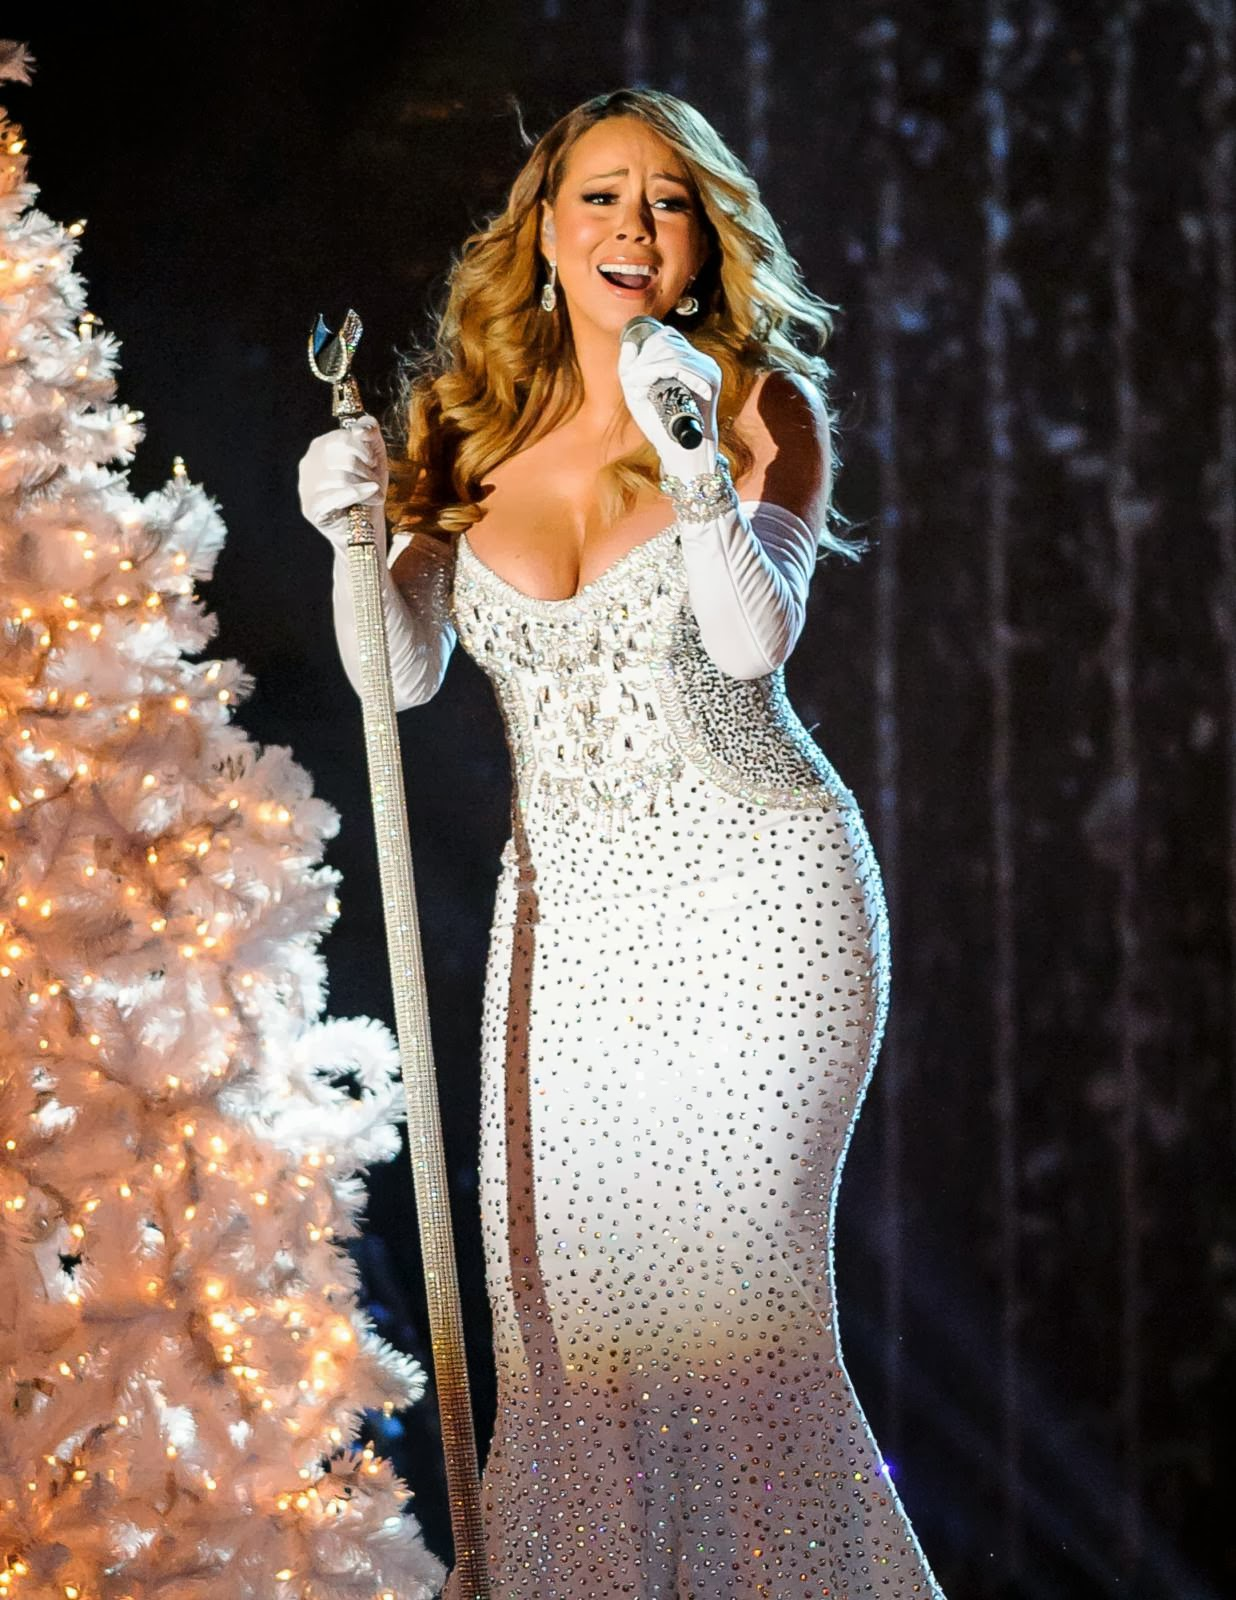 Desi And Celebs Pics Mariah Carey Perform Rockefeller